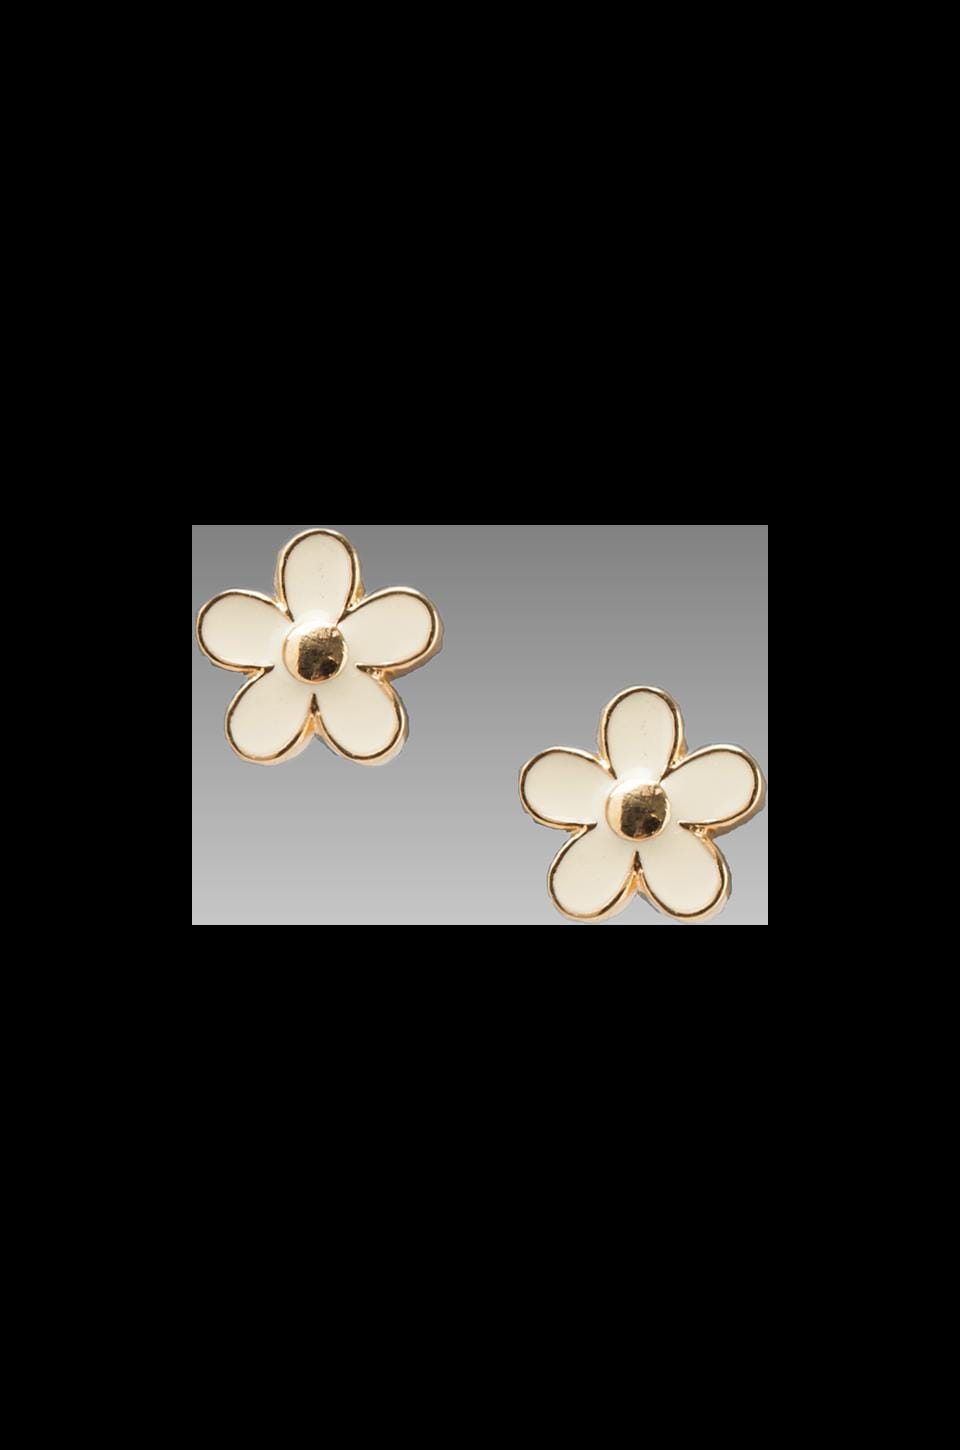 Marc by Marc Jacobs Daisy Stud Earrings in Cream Oro